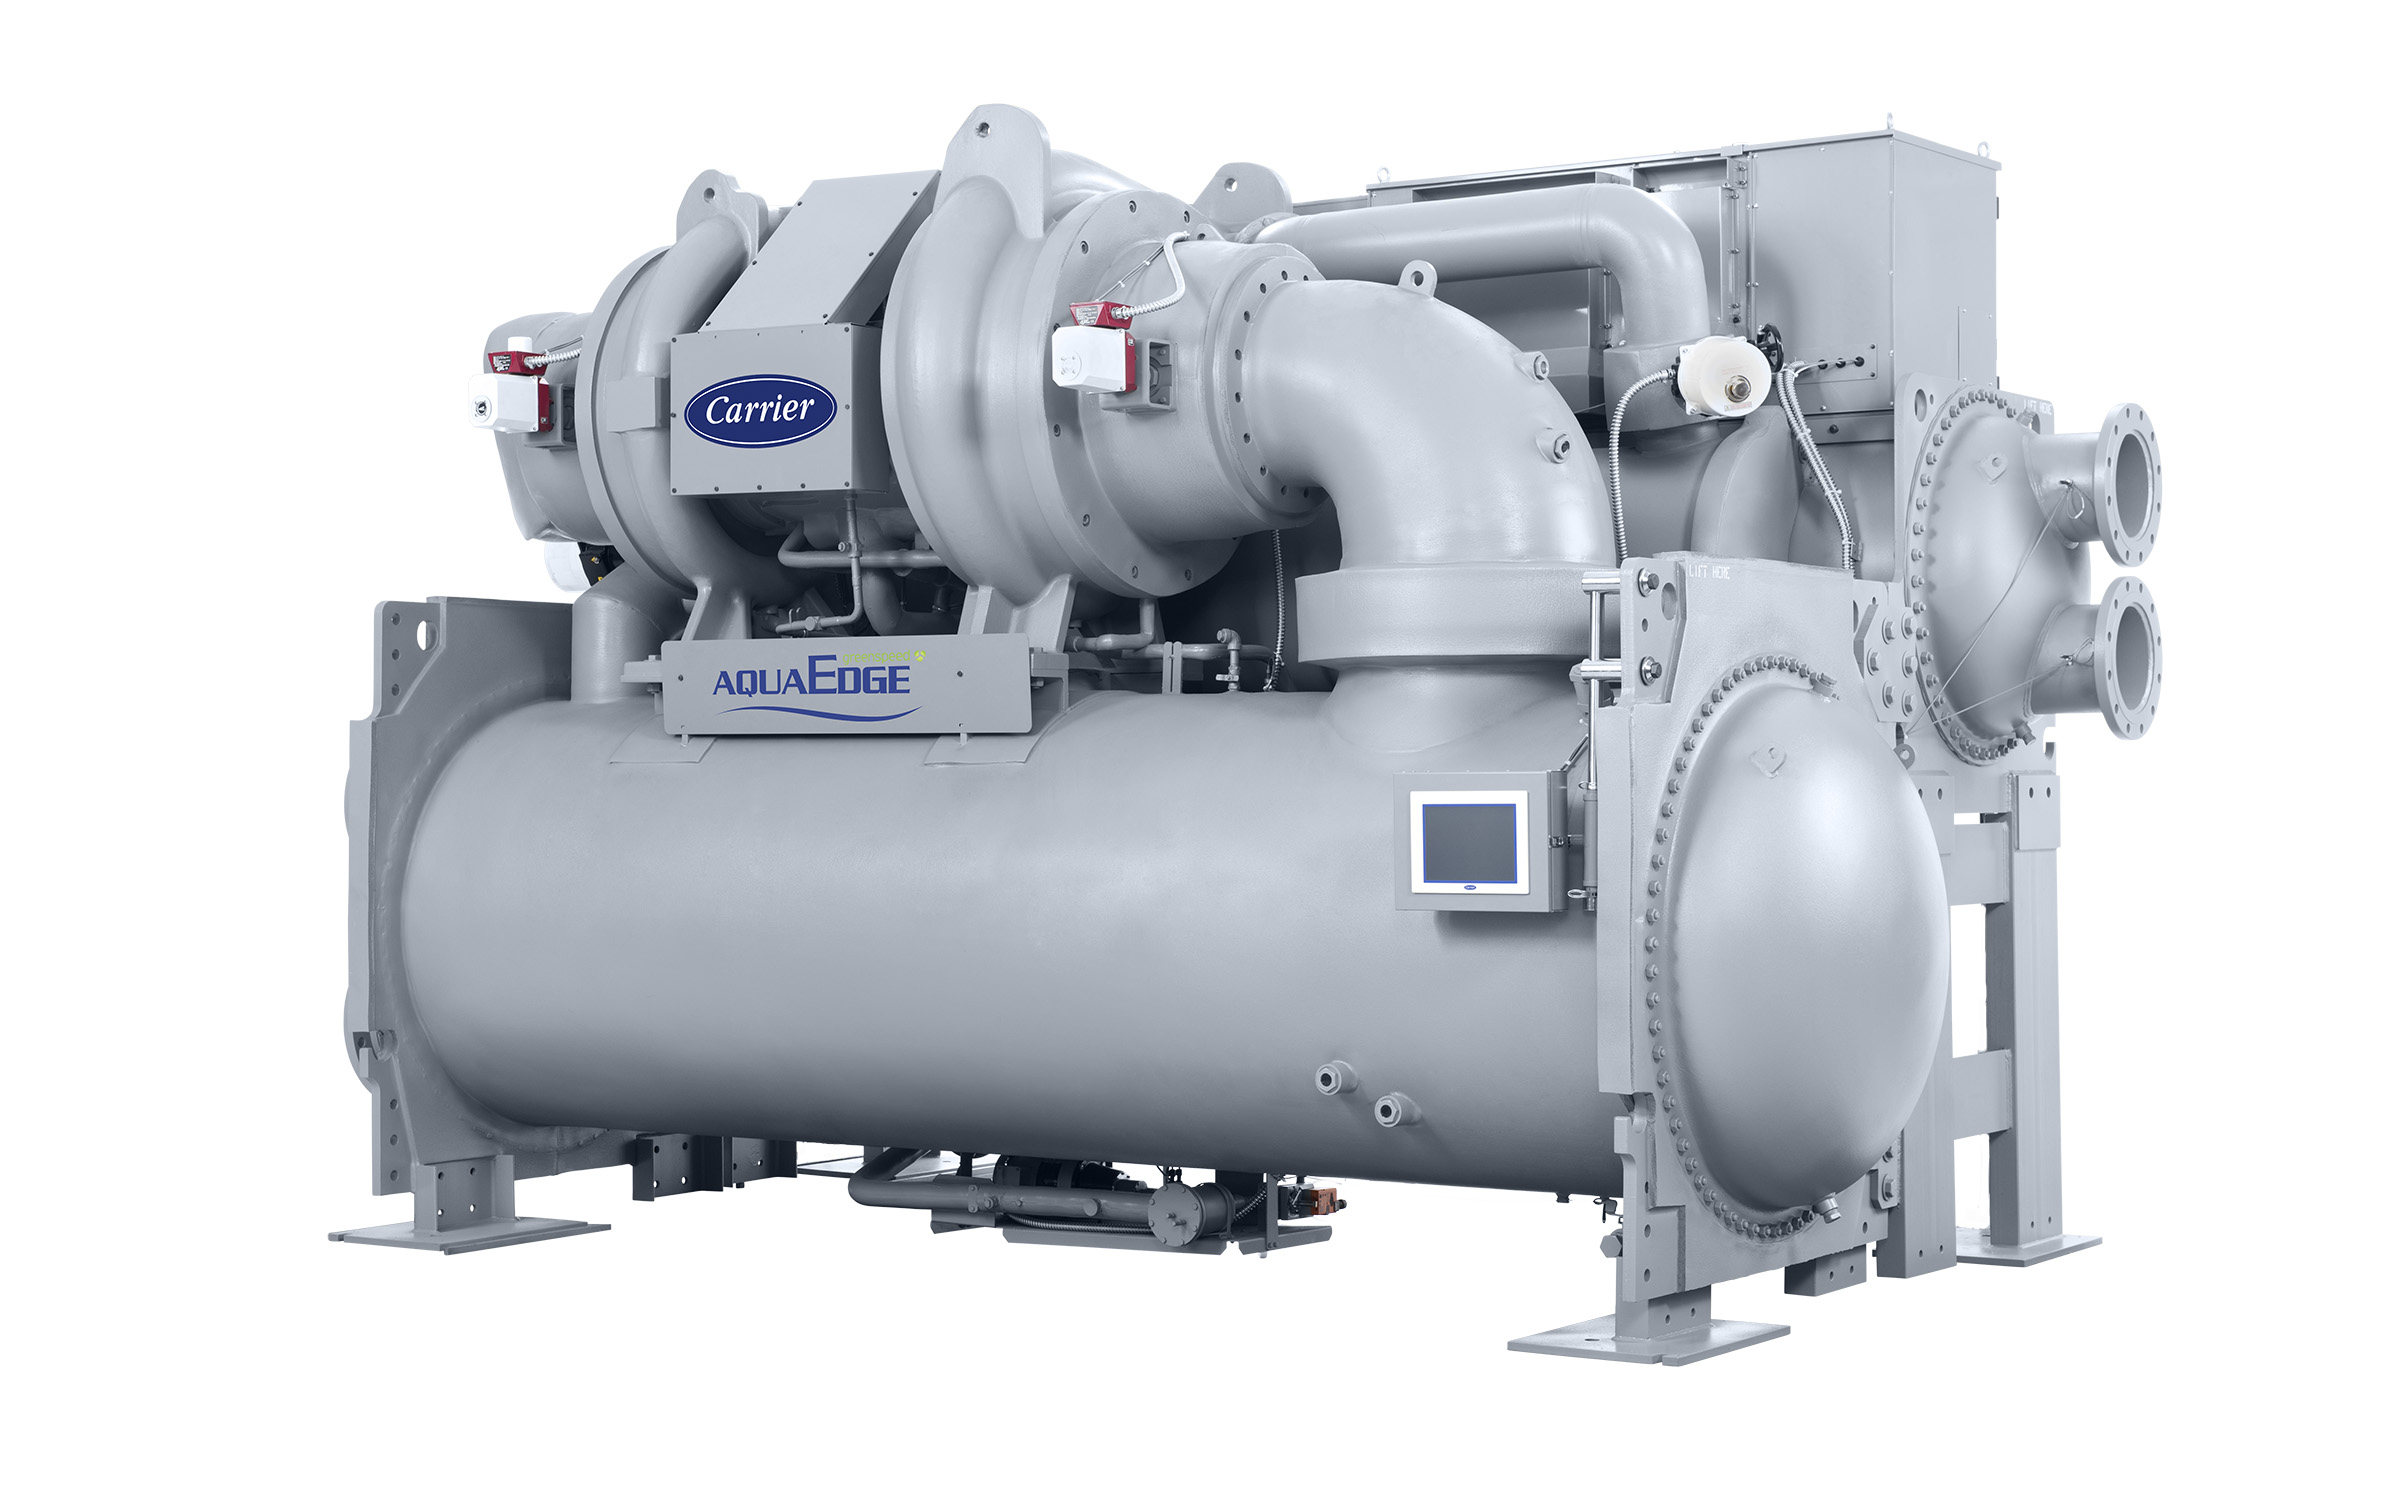 In 2019, the Carrier AquaEdge® 19DV water-cooled centrifugal chiller was recognized as a top chiller by leading organizations across four major regions of the world.